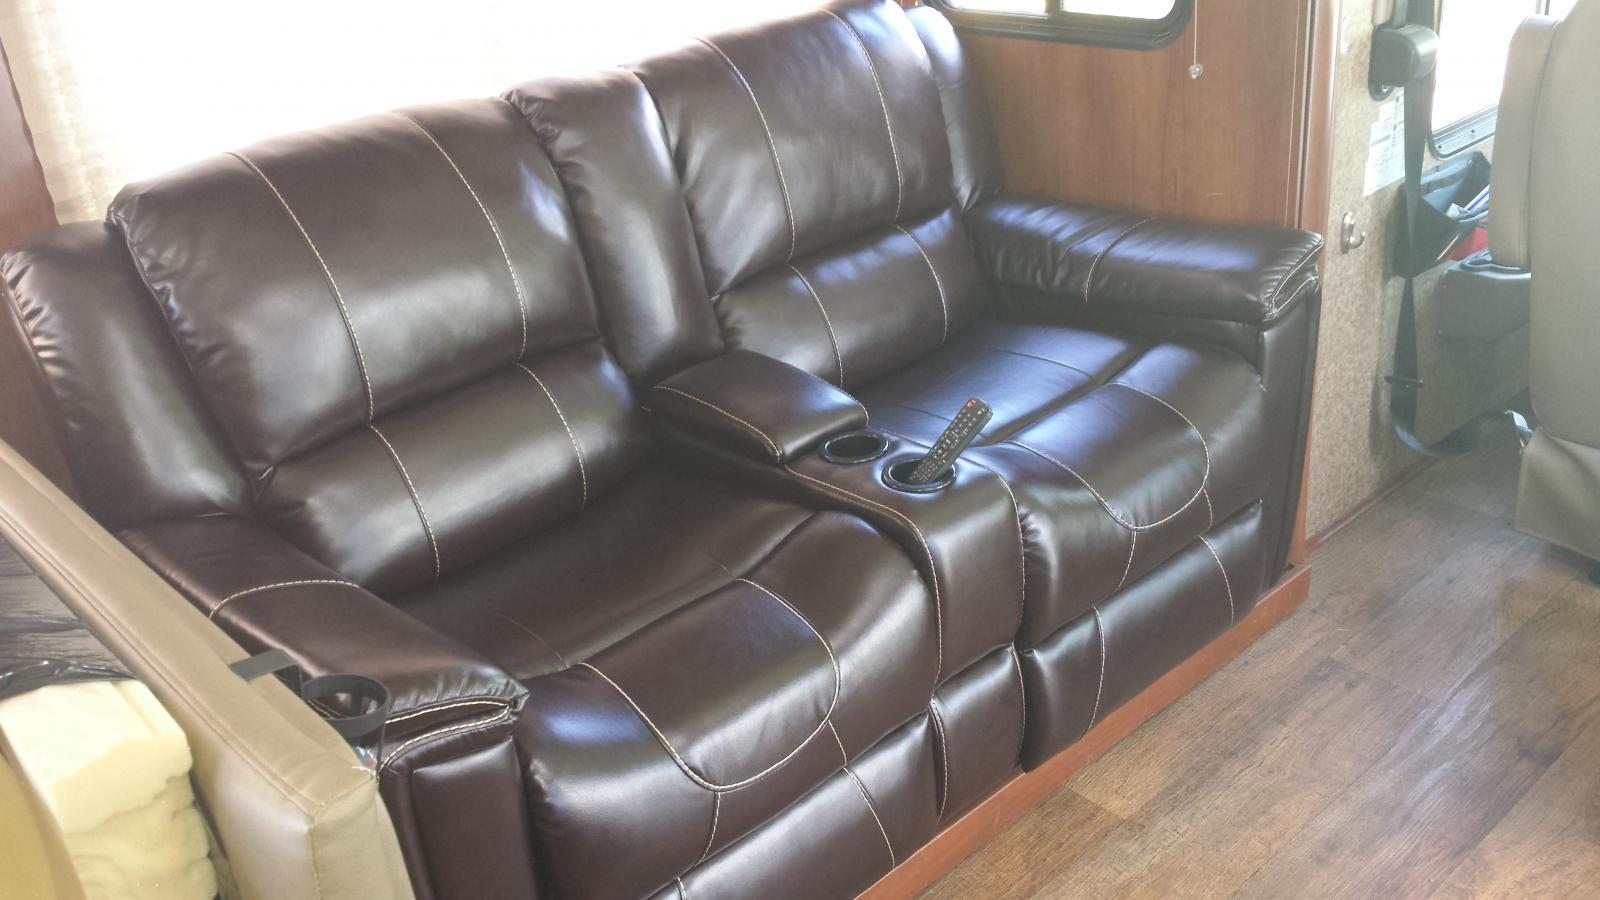 New Recliners